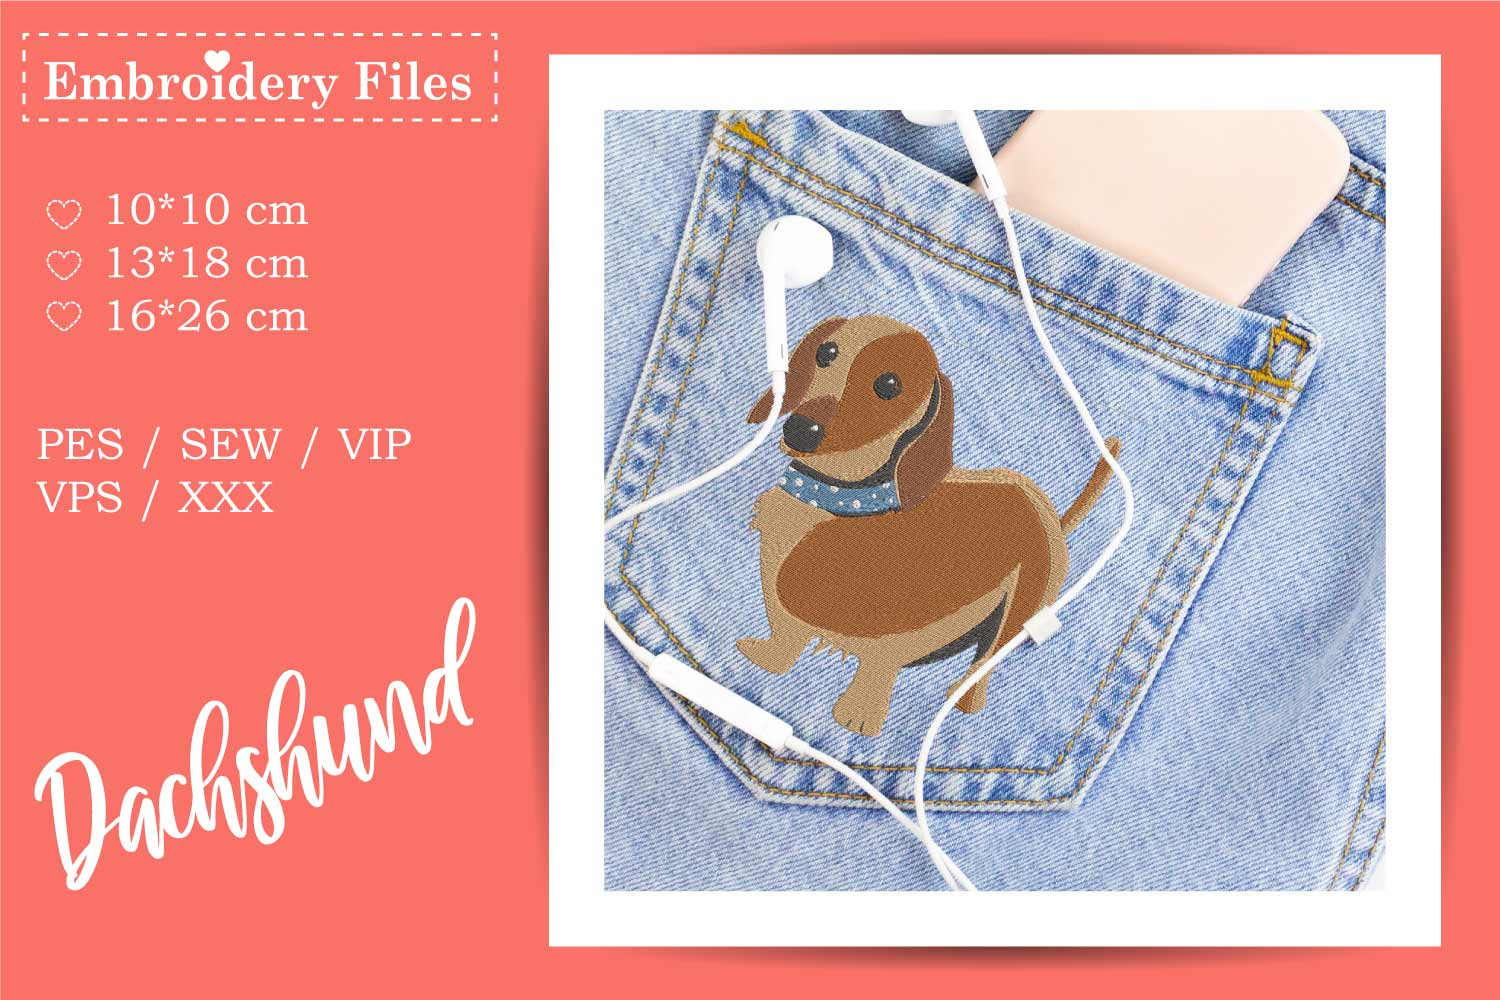 Dogs - Mini Bundle - Embroidery Files for Beginners example image 5